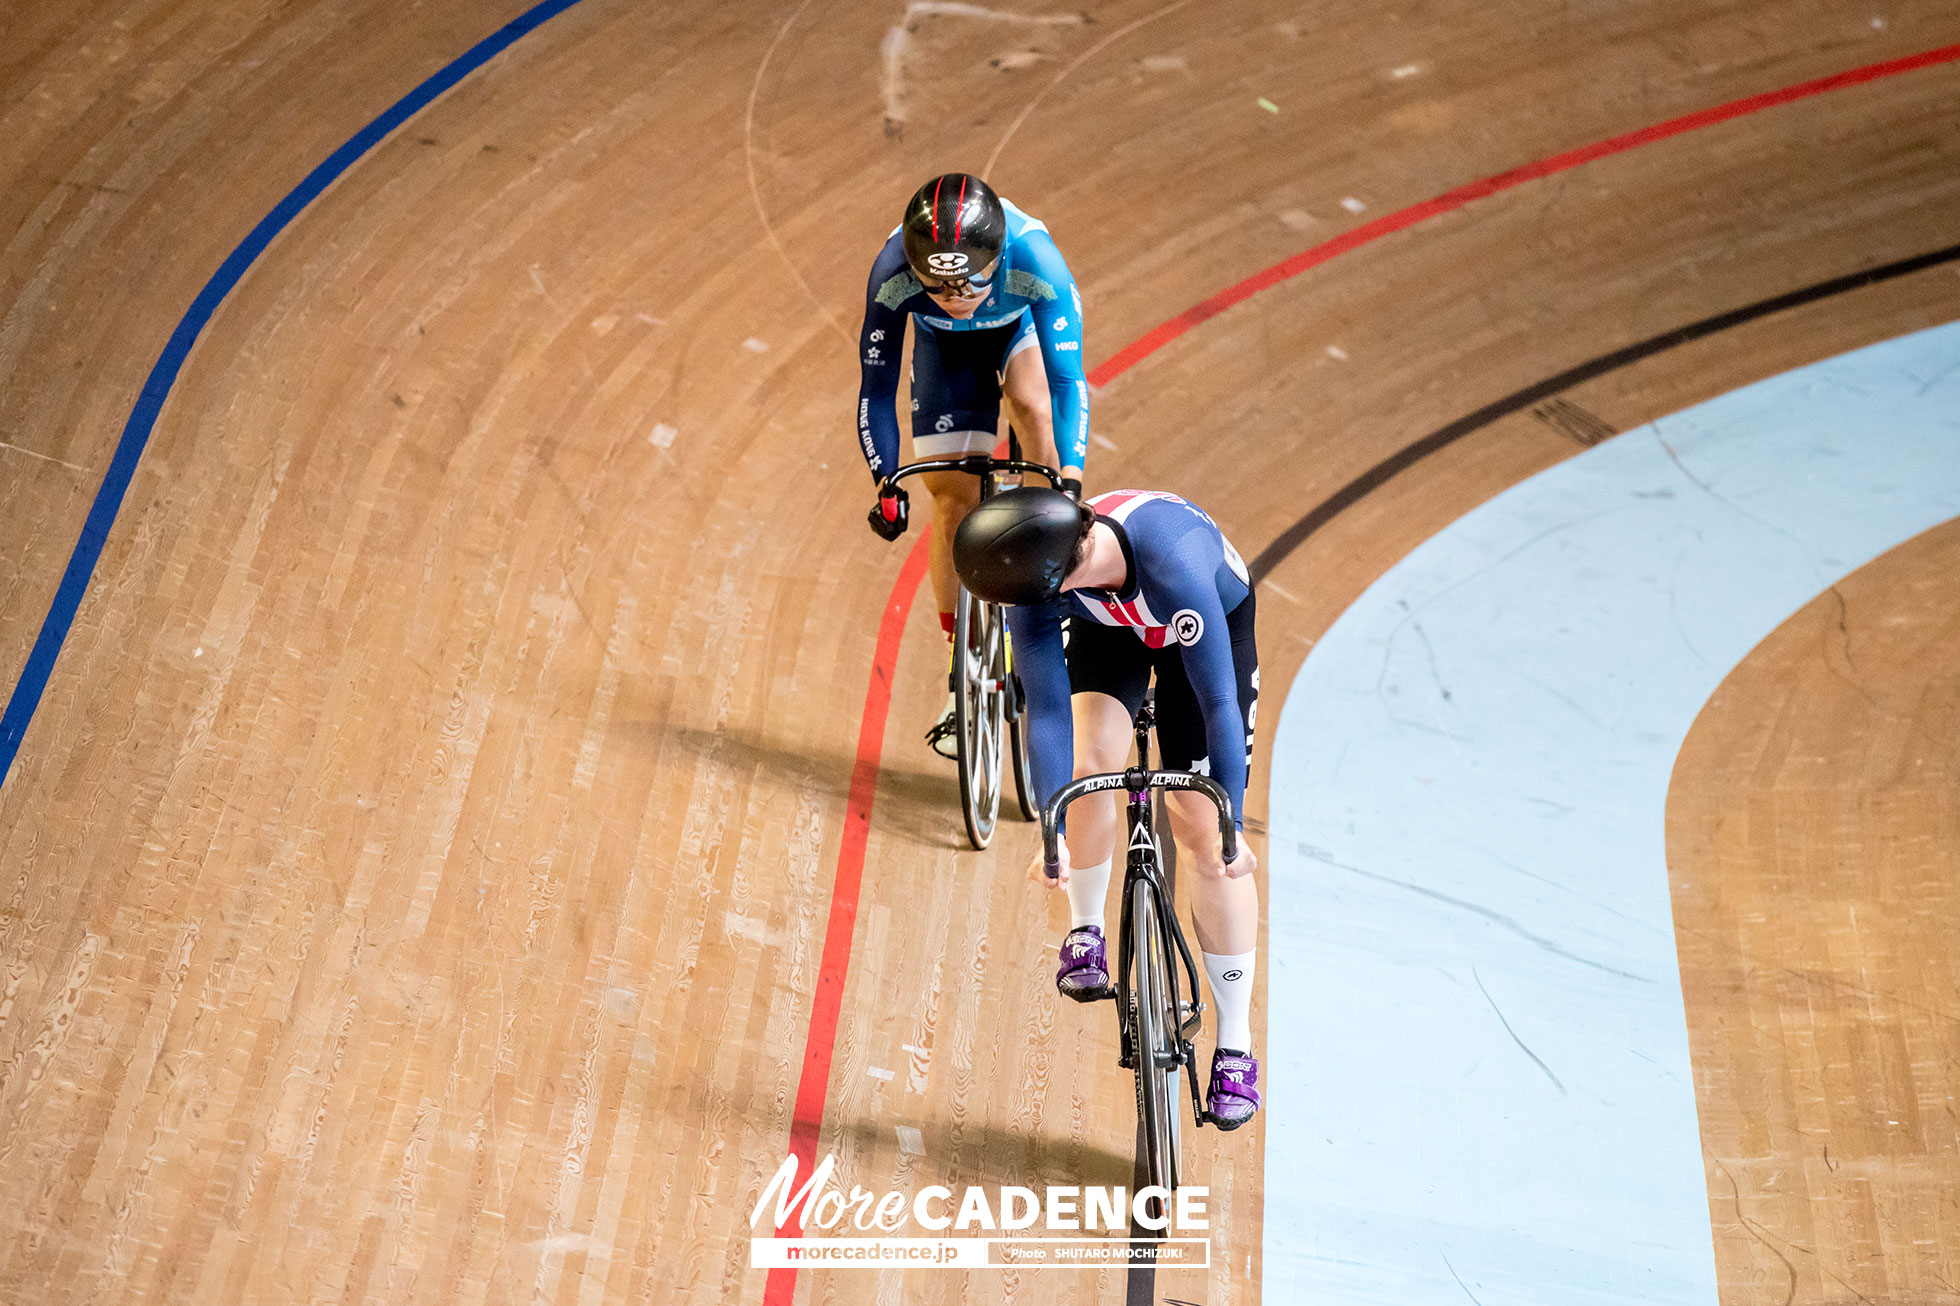 2018 Japan Track Cup 2 - WE Sprint